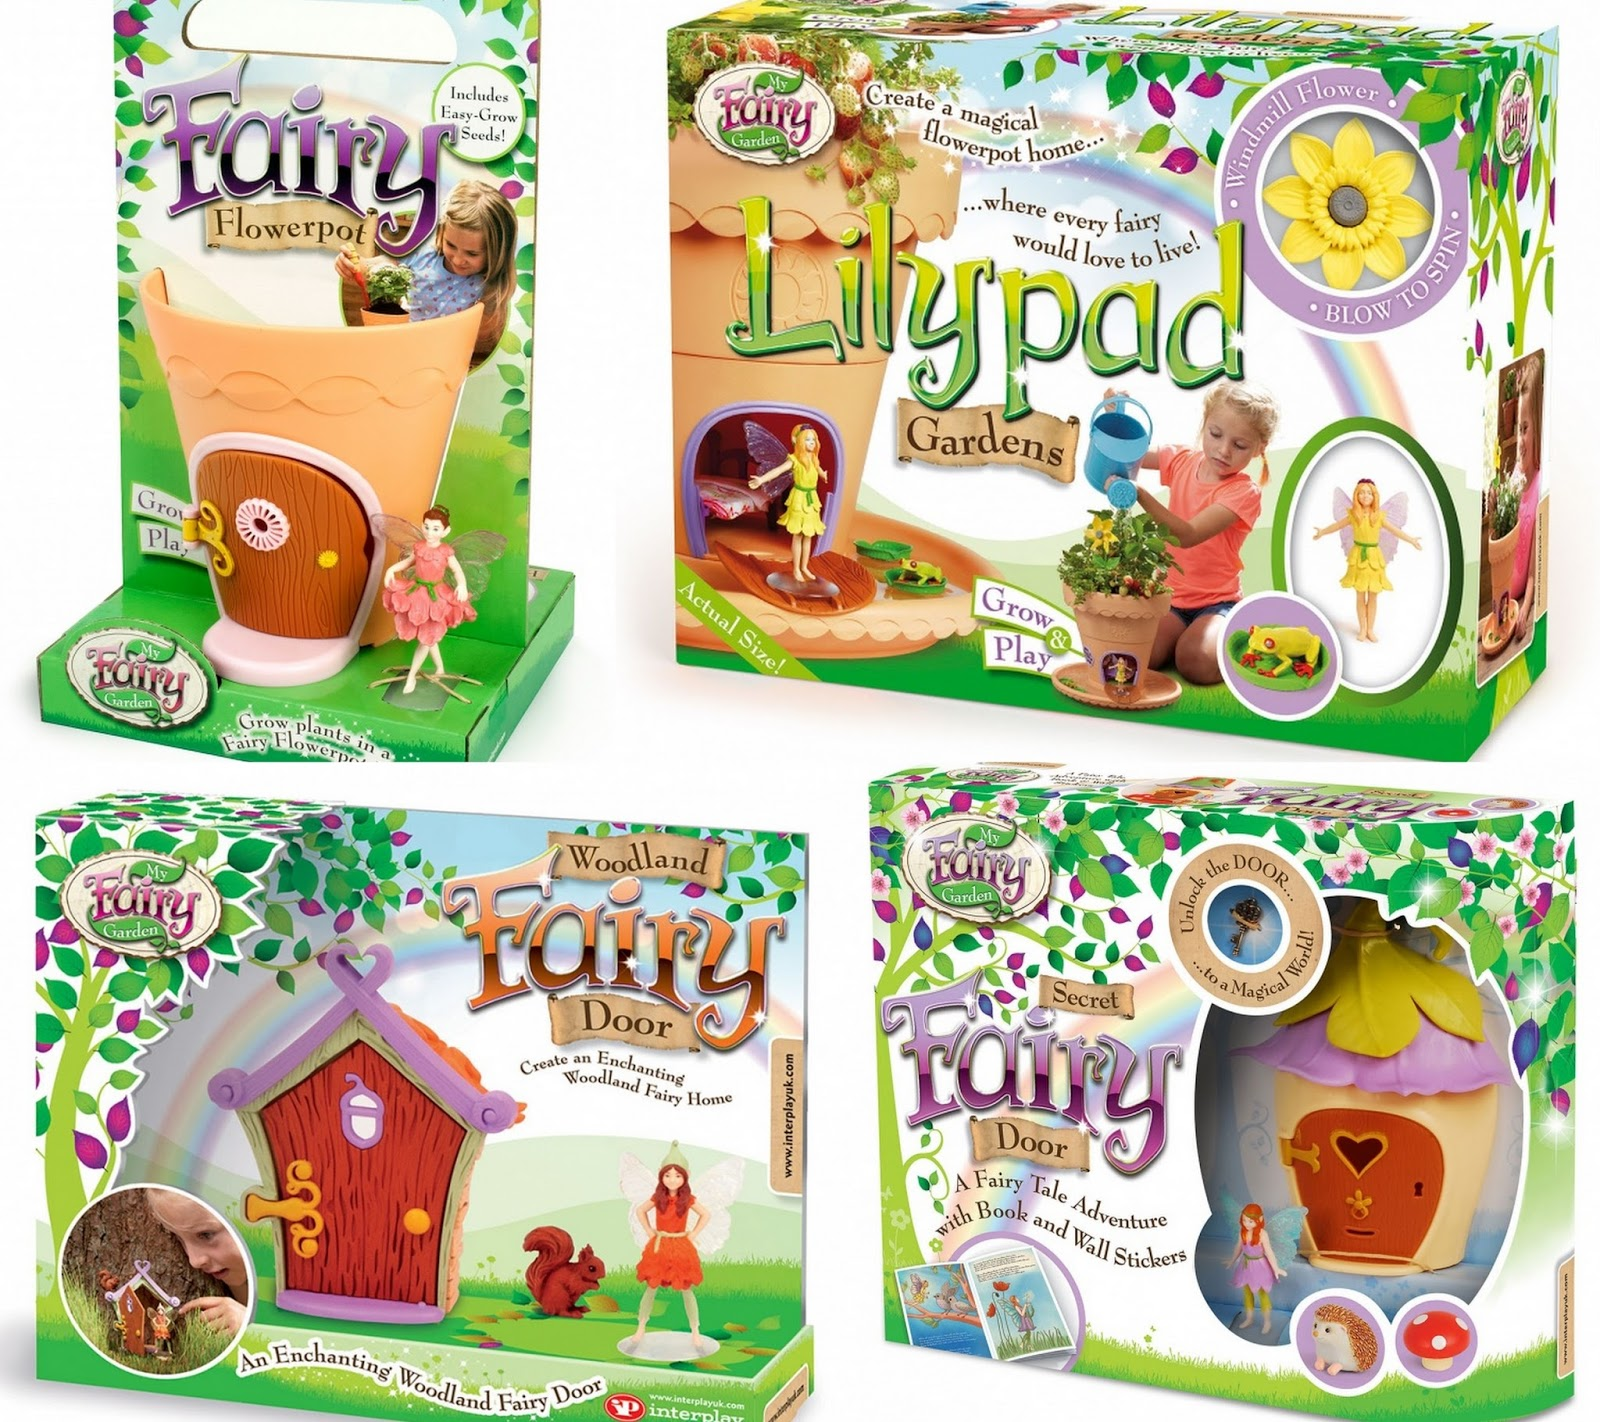 Good The Brick Castle: My Fairy Garden Giveaway From Interplay. Good Looking